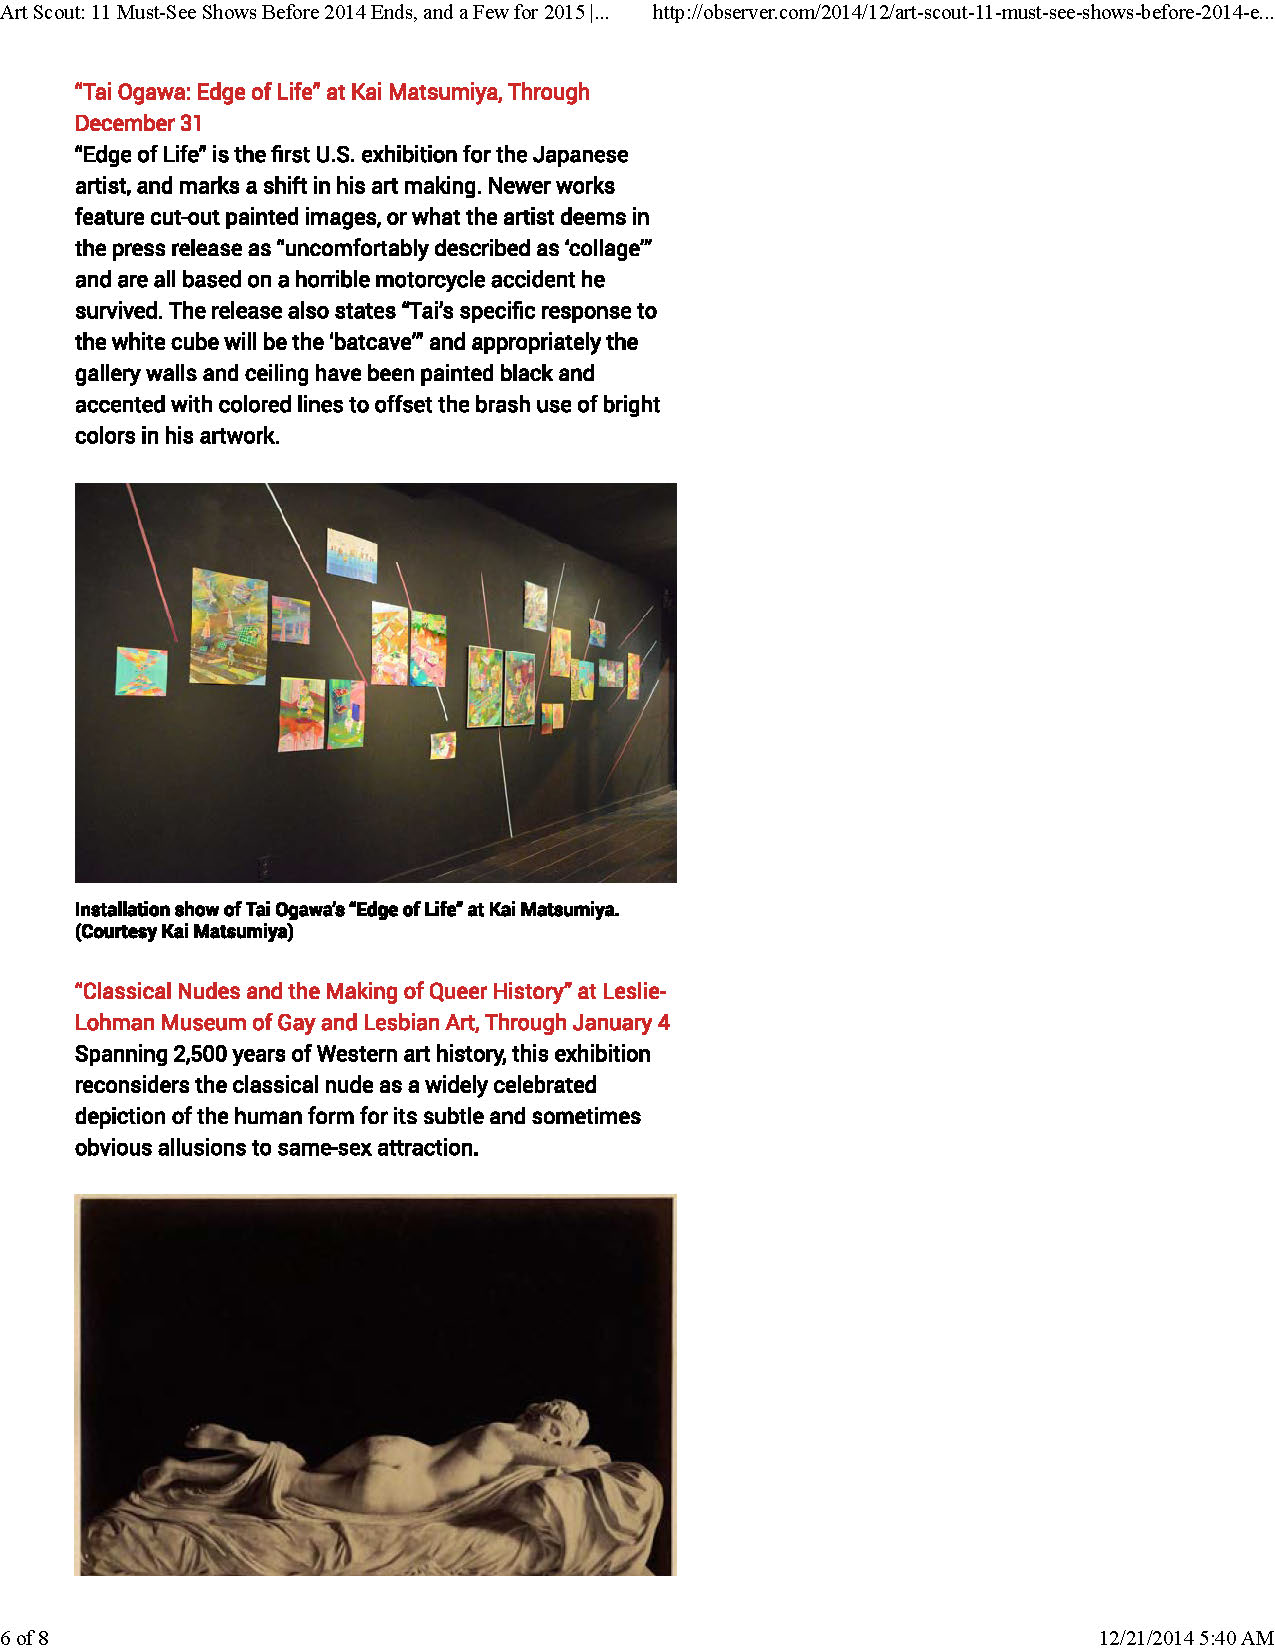 Art Scout_ 11 Must-See Shows Before 2014 Ends, and a Few for 2015 _ New York Observer.jpg